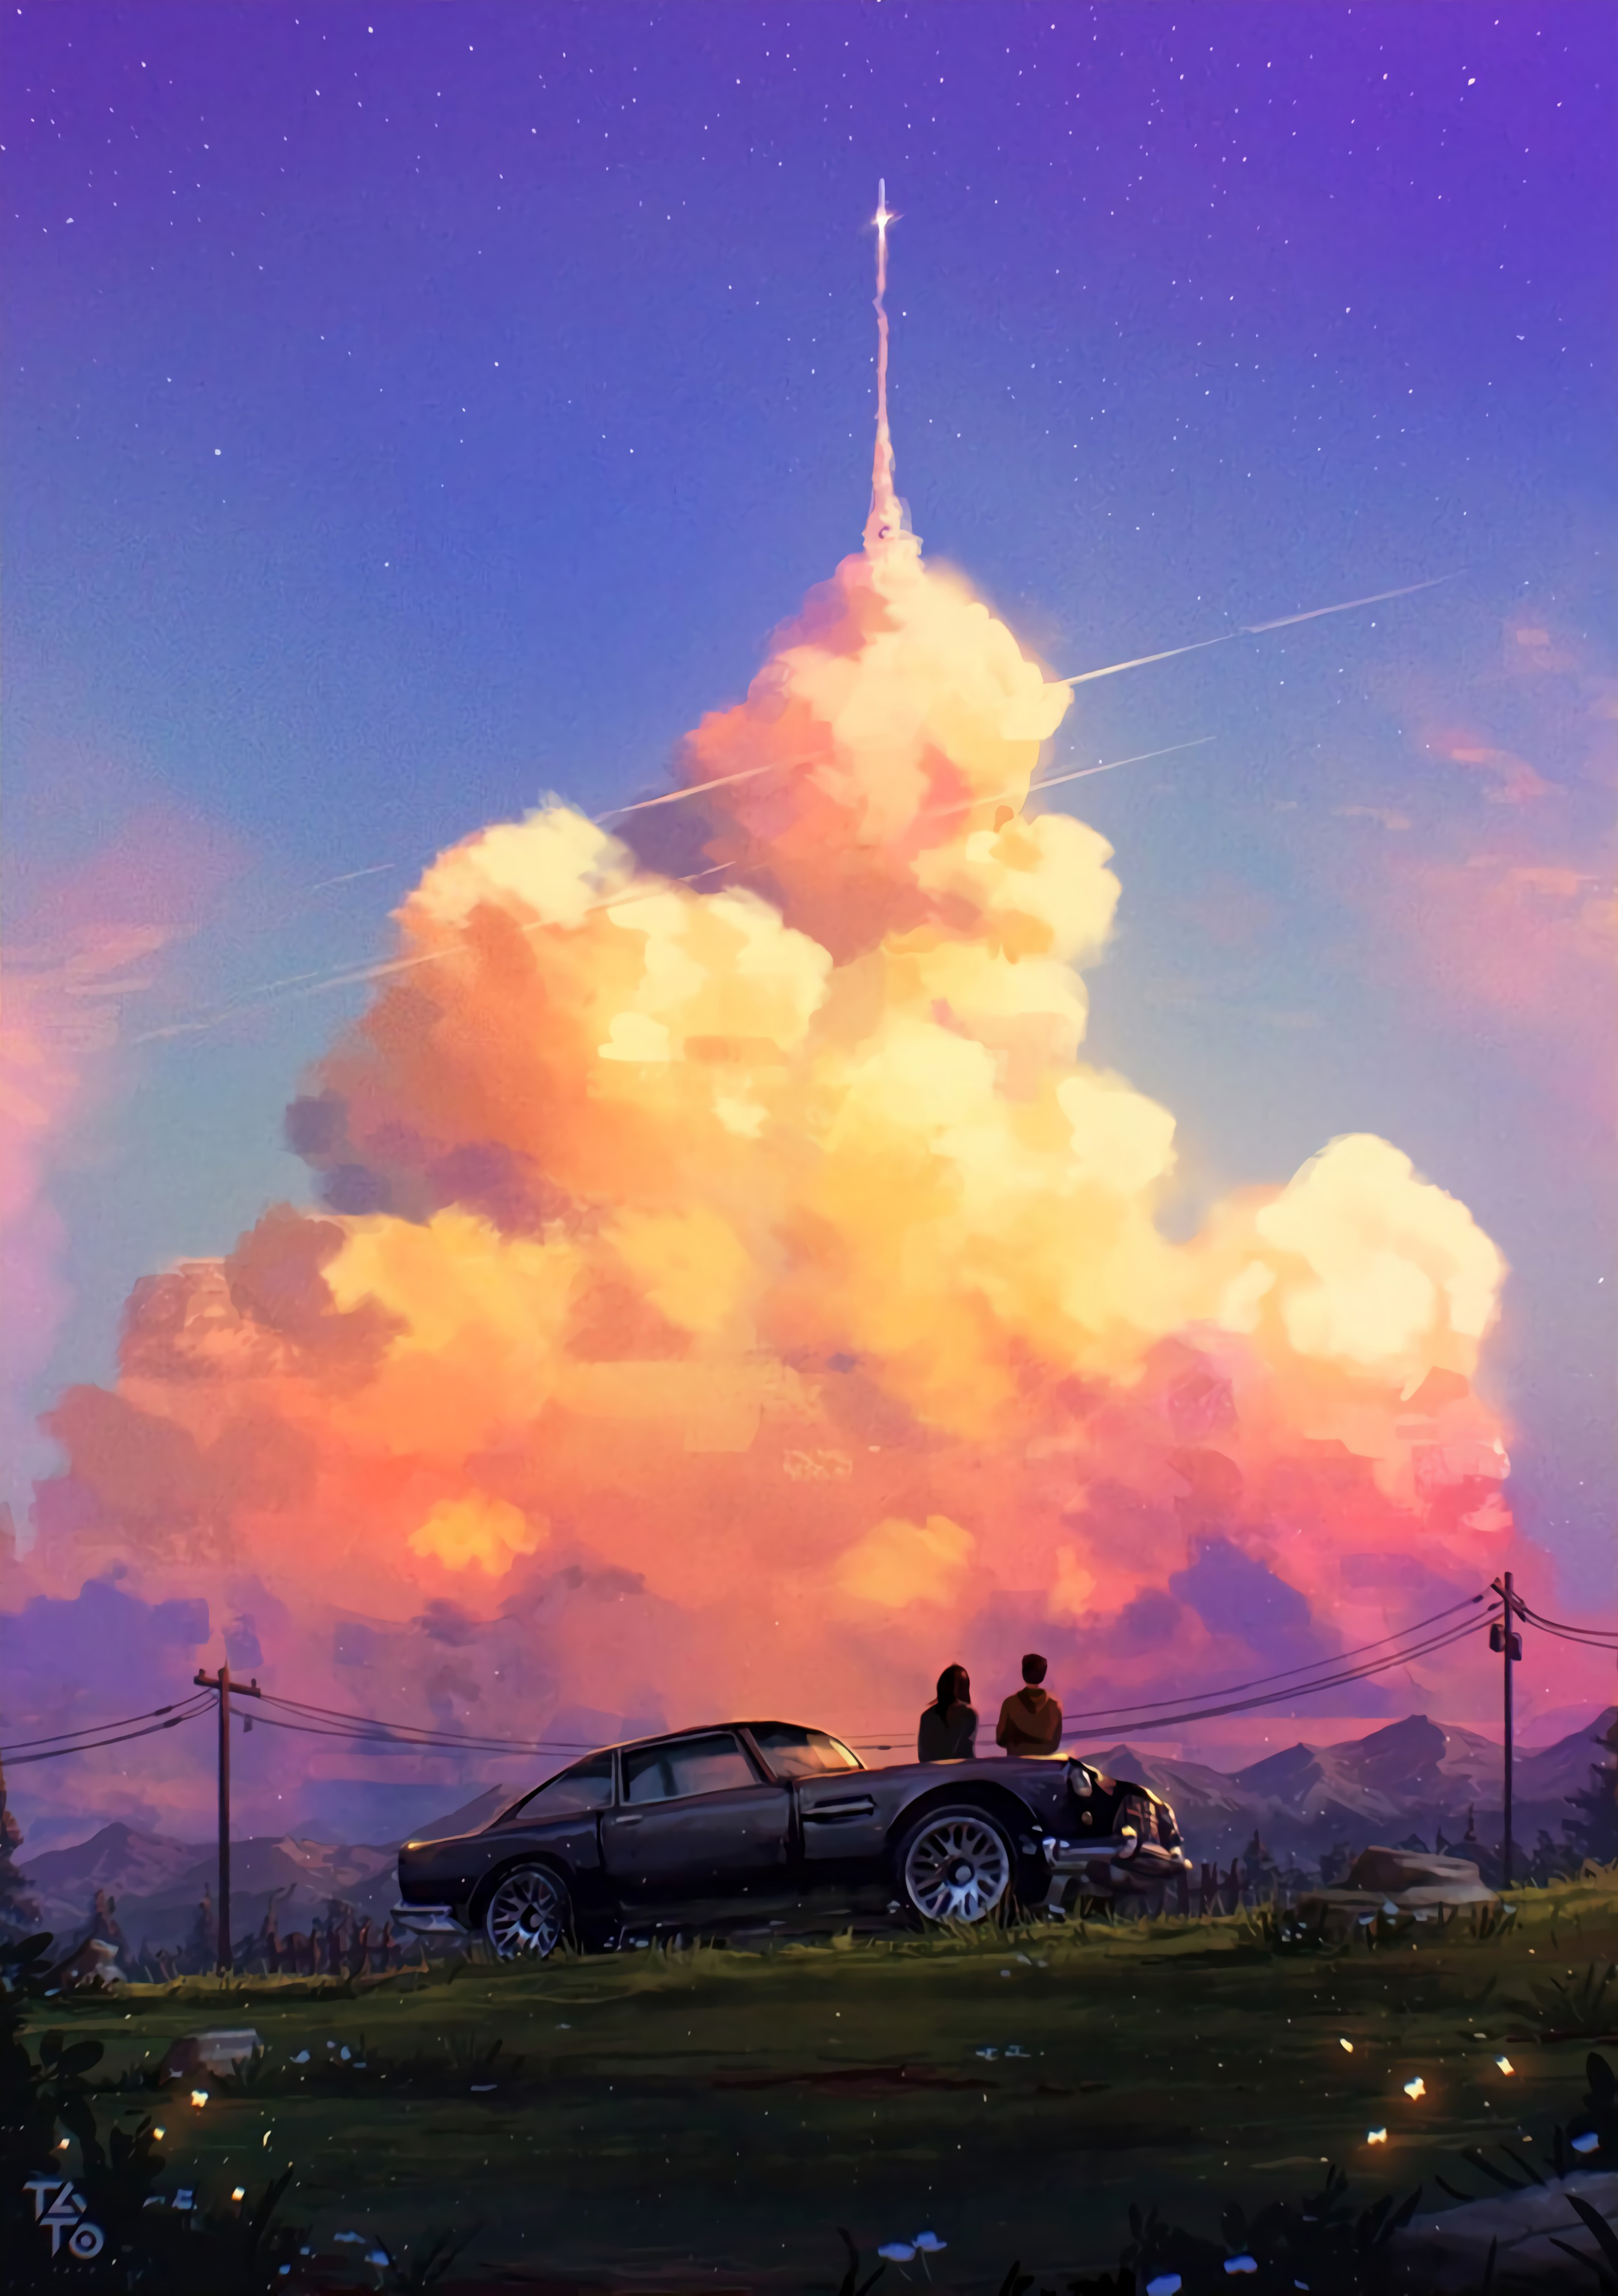 65905 download wallpaper Romance, Love, Car, Machine, Sunset, Art screensavers and pictures for free